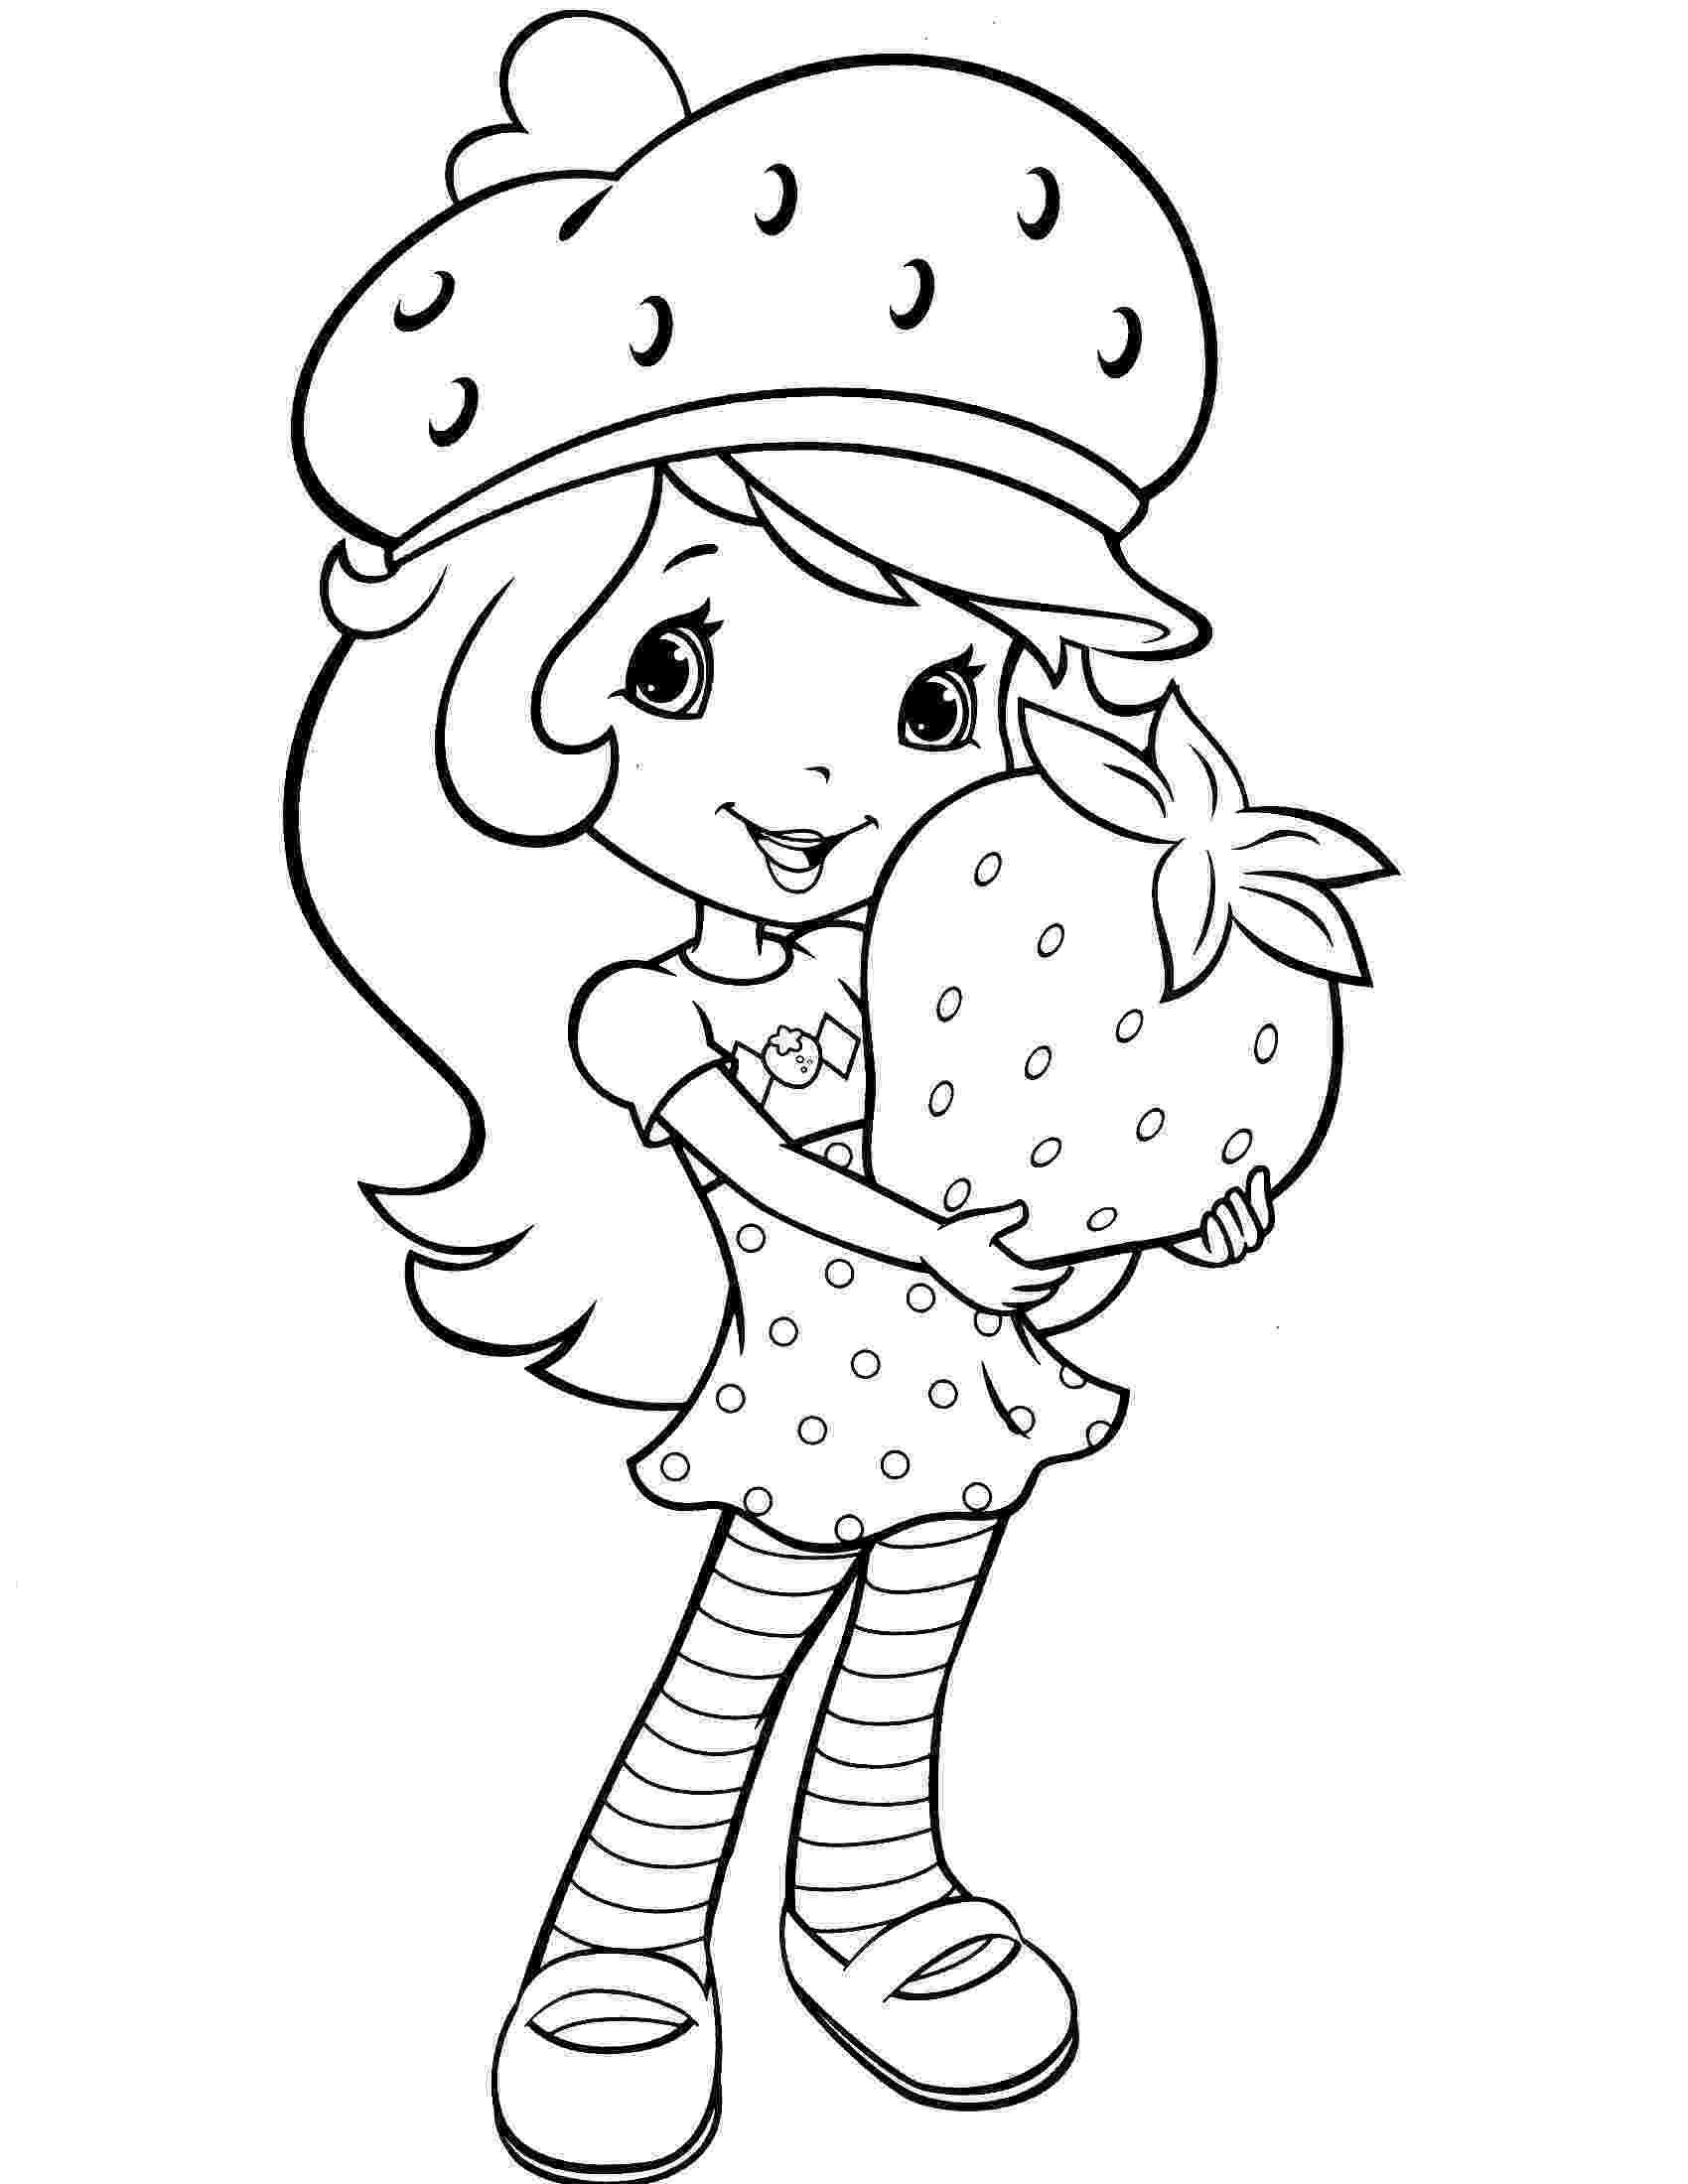 strawberry shortcake colouring pictures strawberry shortcake backgrounds wallpapertag pictures strawberry shortcake colouring